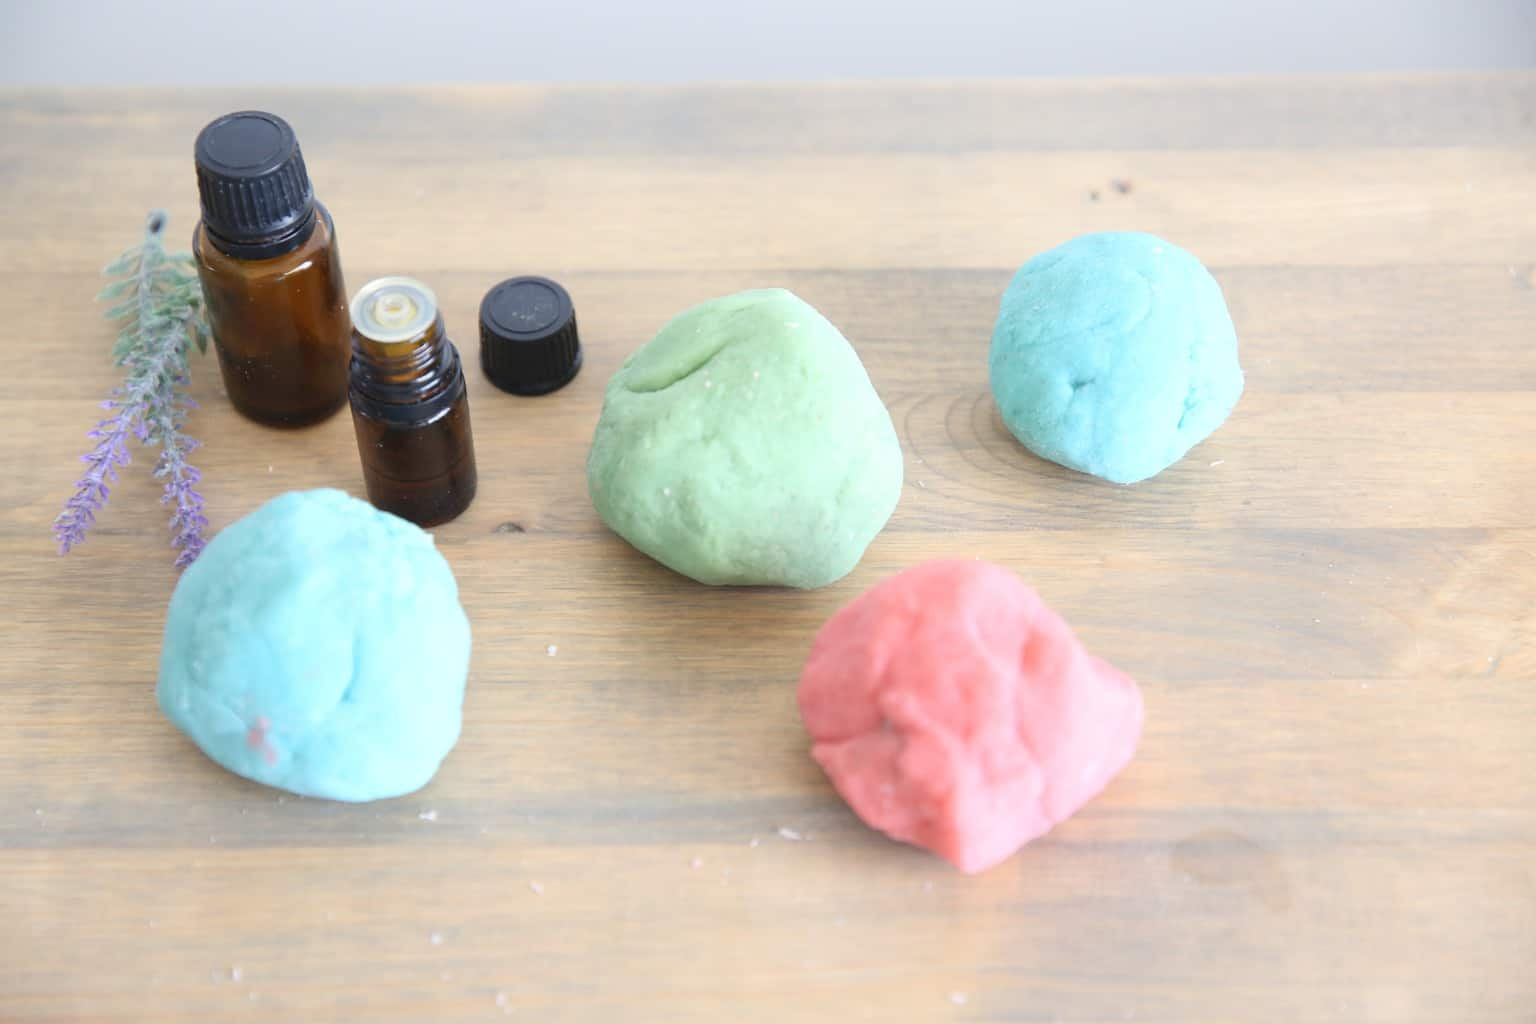 4 different colored balls of fresh made playdough on wooden table top